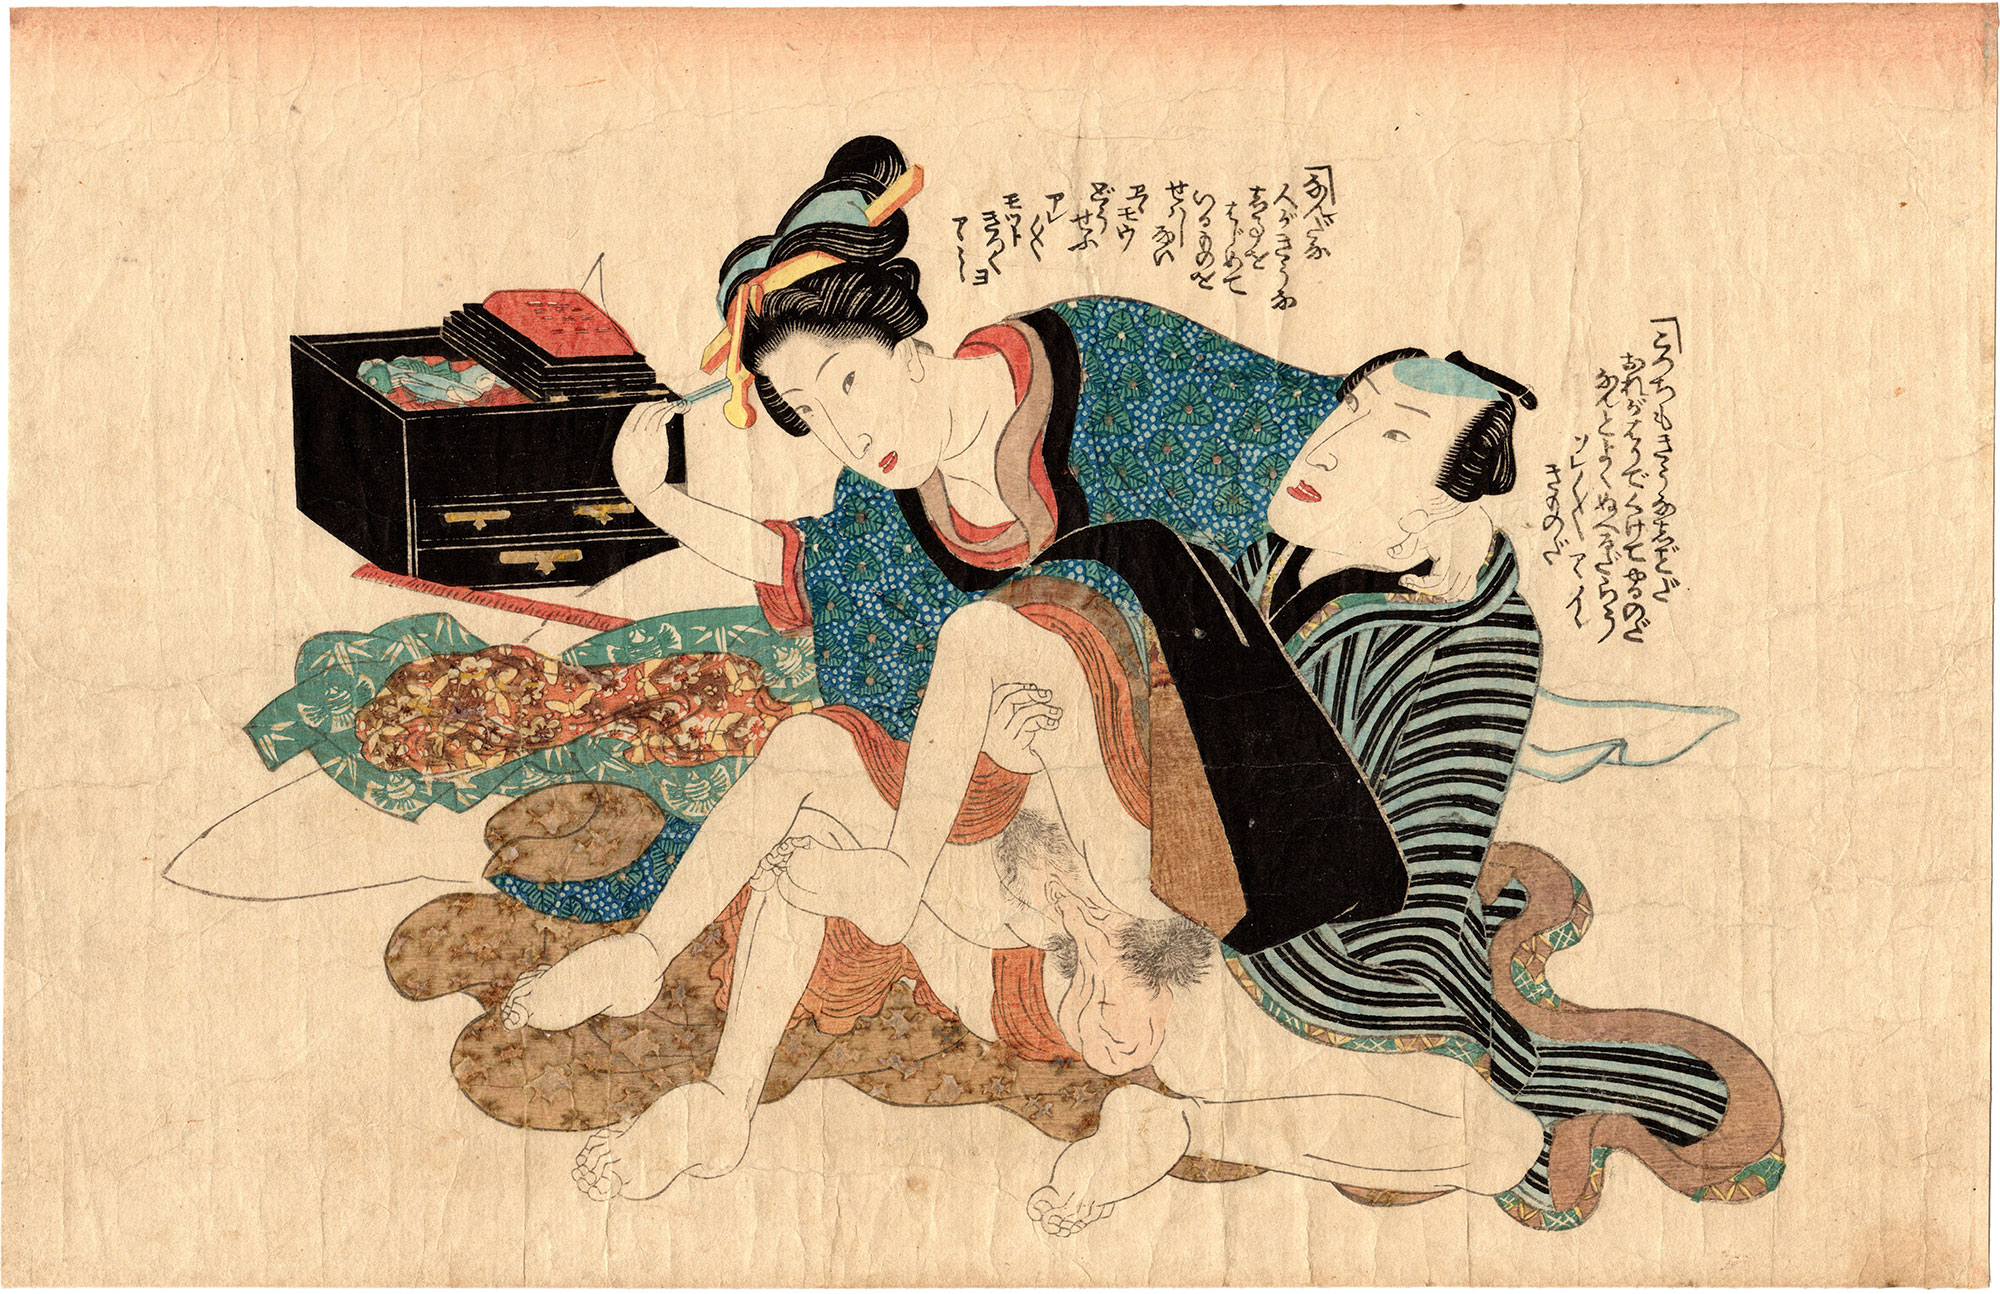 PLUM OF THE SLEEVE: NEEDLEWORK (Utagawa Kuniyoshi)